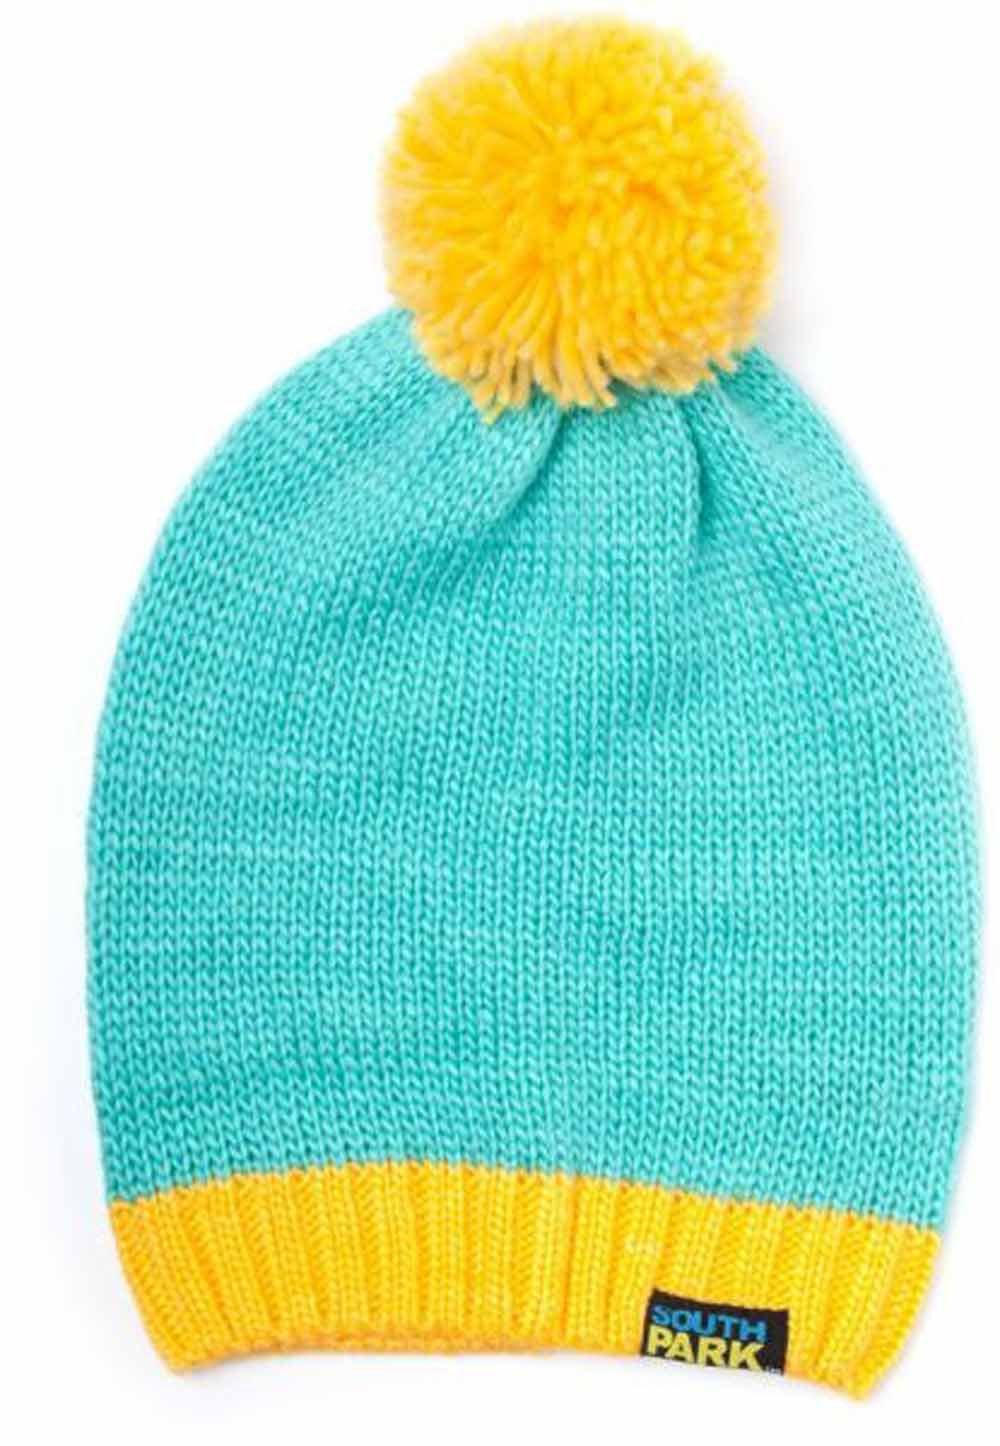 South Park Cartman Beanie (Blue Yellow)  Amazon.co.uk  Toys   Games 374cb3d754a